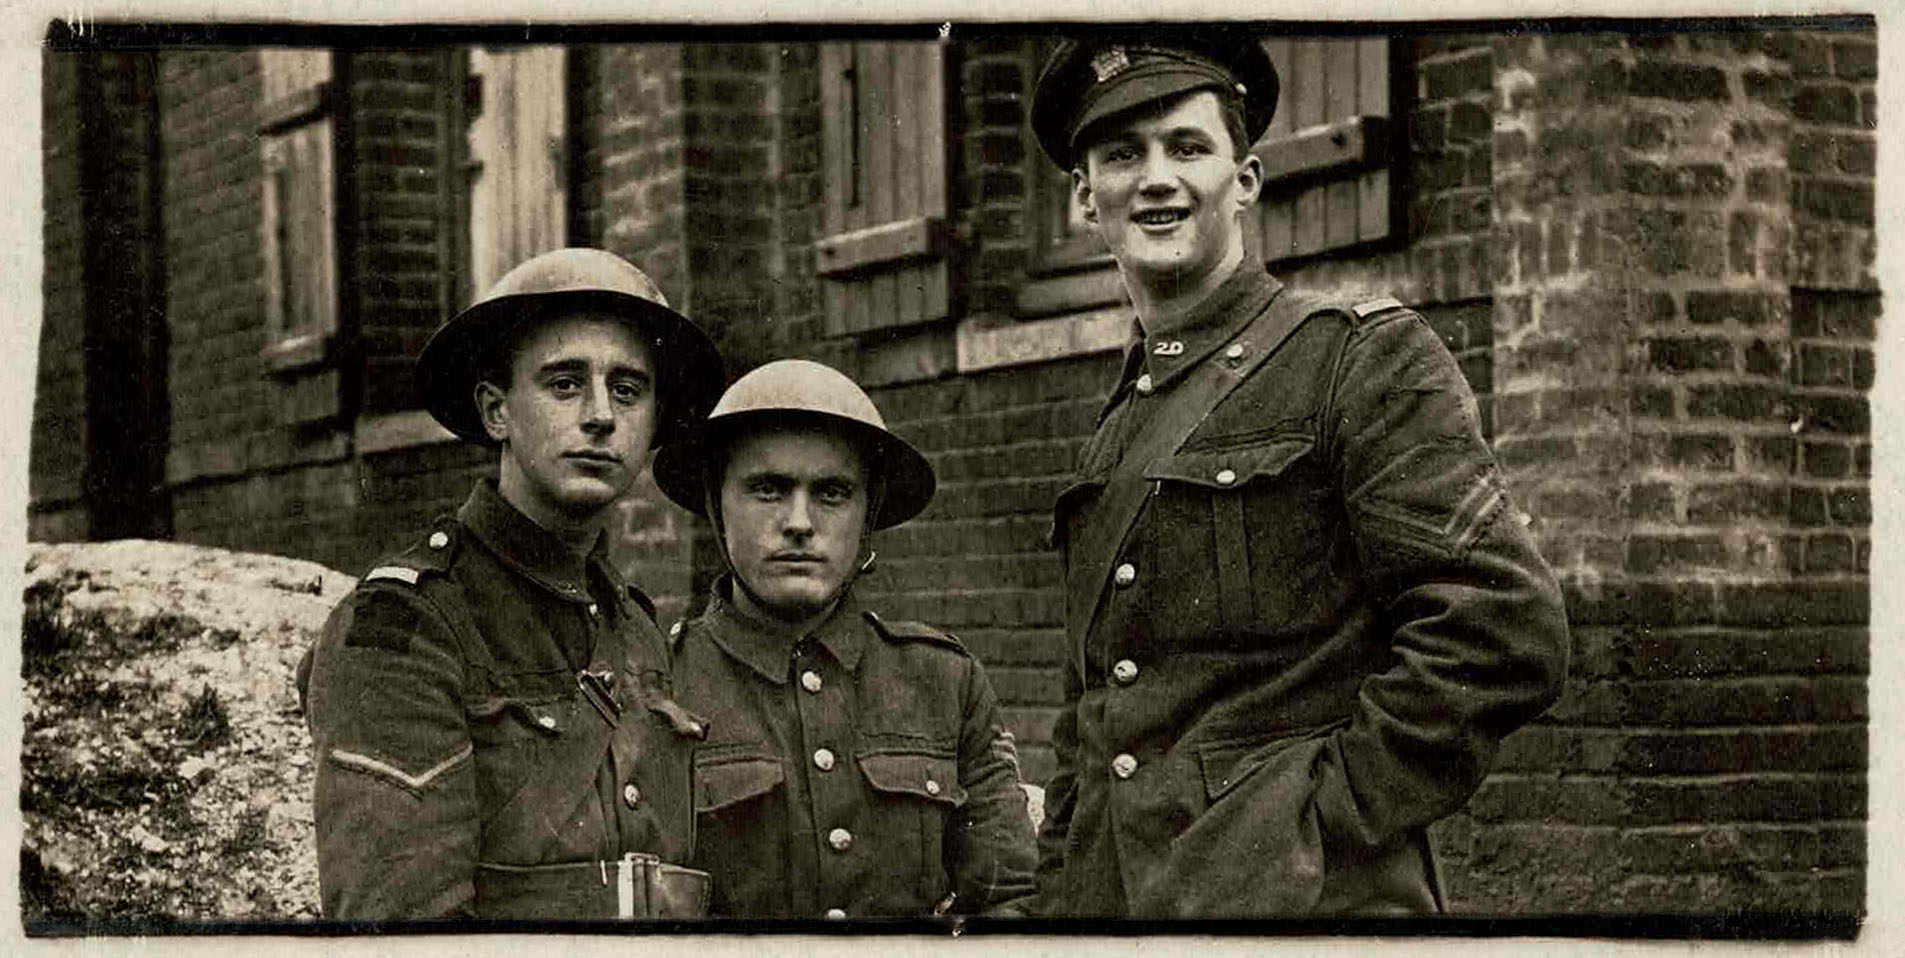 Photograph of Philip Coombe and two other soldiers in France, 1918.